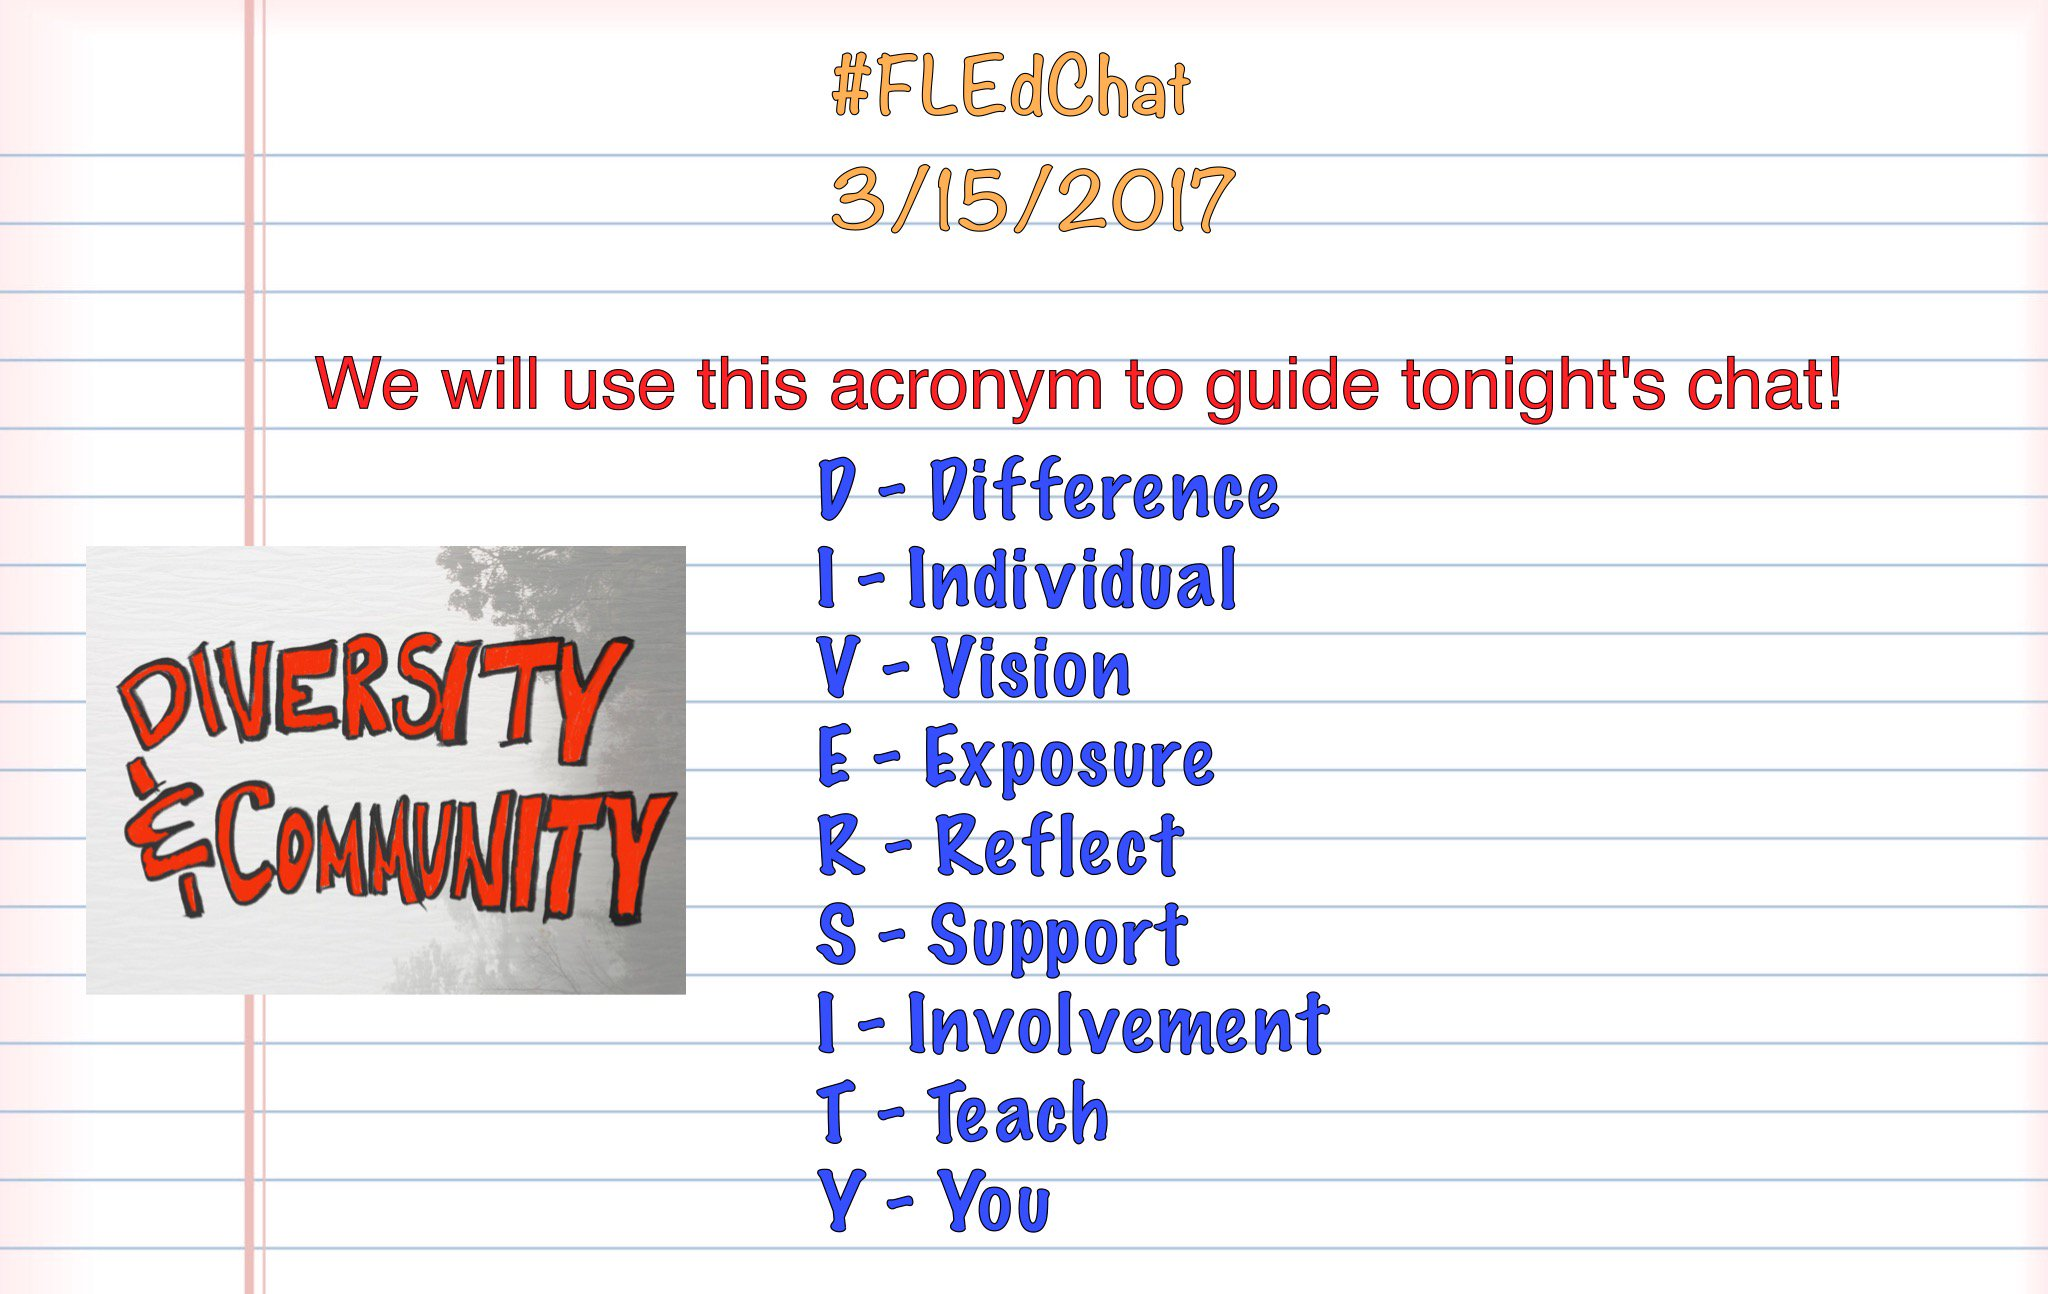 In 15 minutes, #FLEdChat will begin, and we will use the acronym on this graphic to guide the chat! Hope you will join us! https://t.co/gh2AEjsNsM